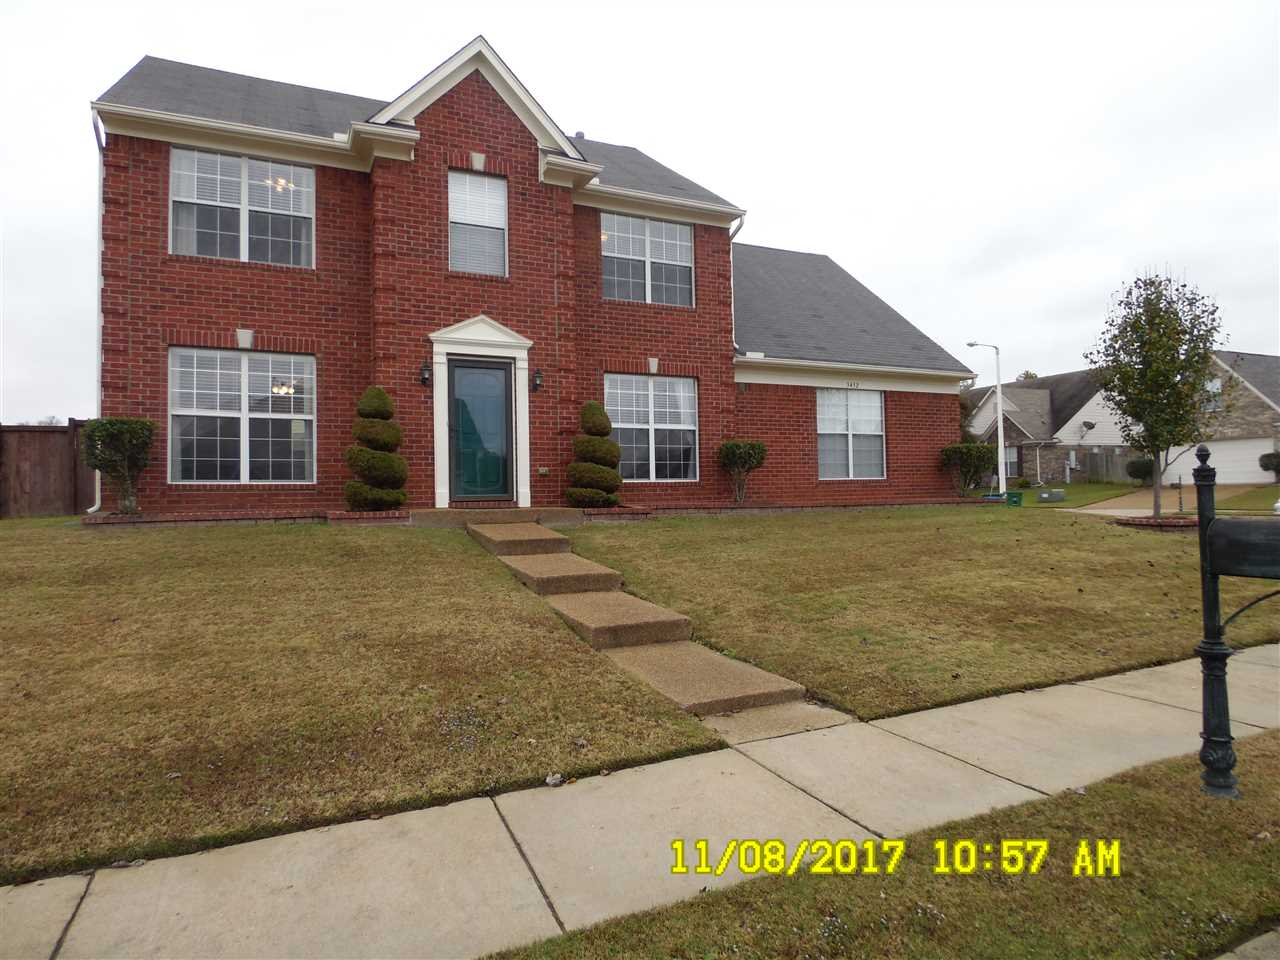 5452 Belle Ridge Arlington, TN 38002 - MLS #: 10015012